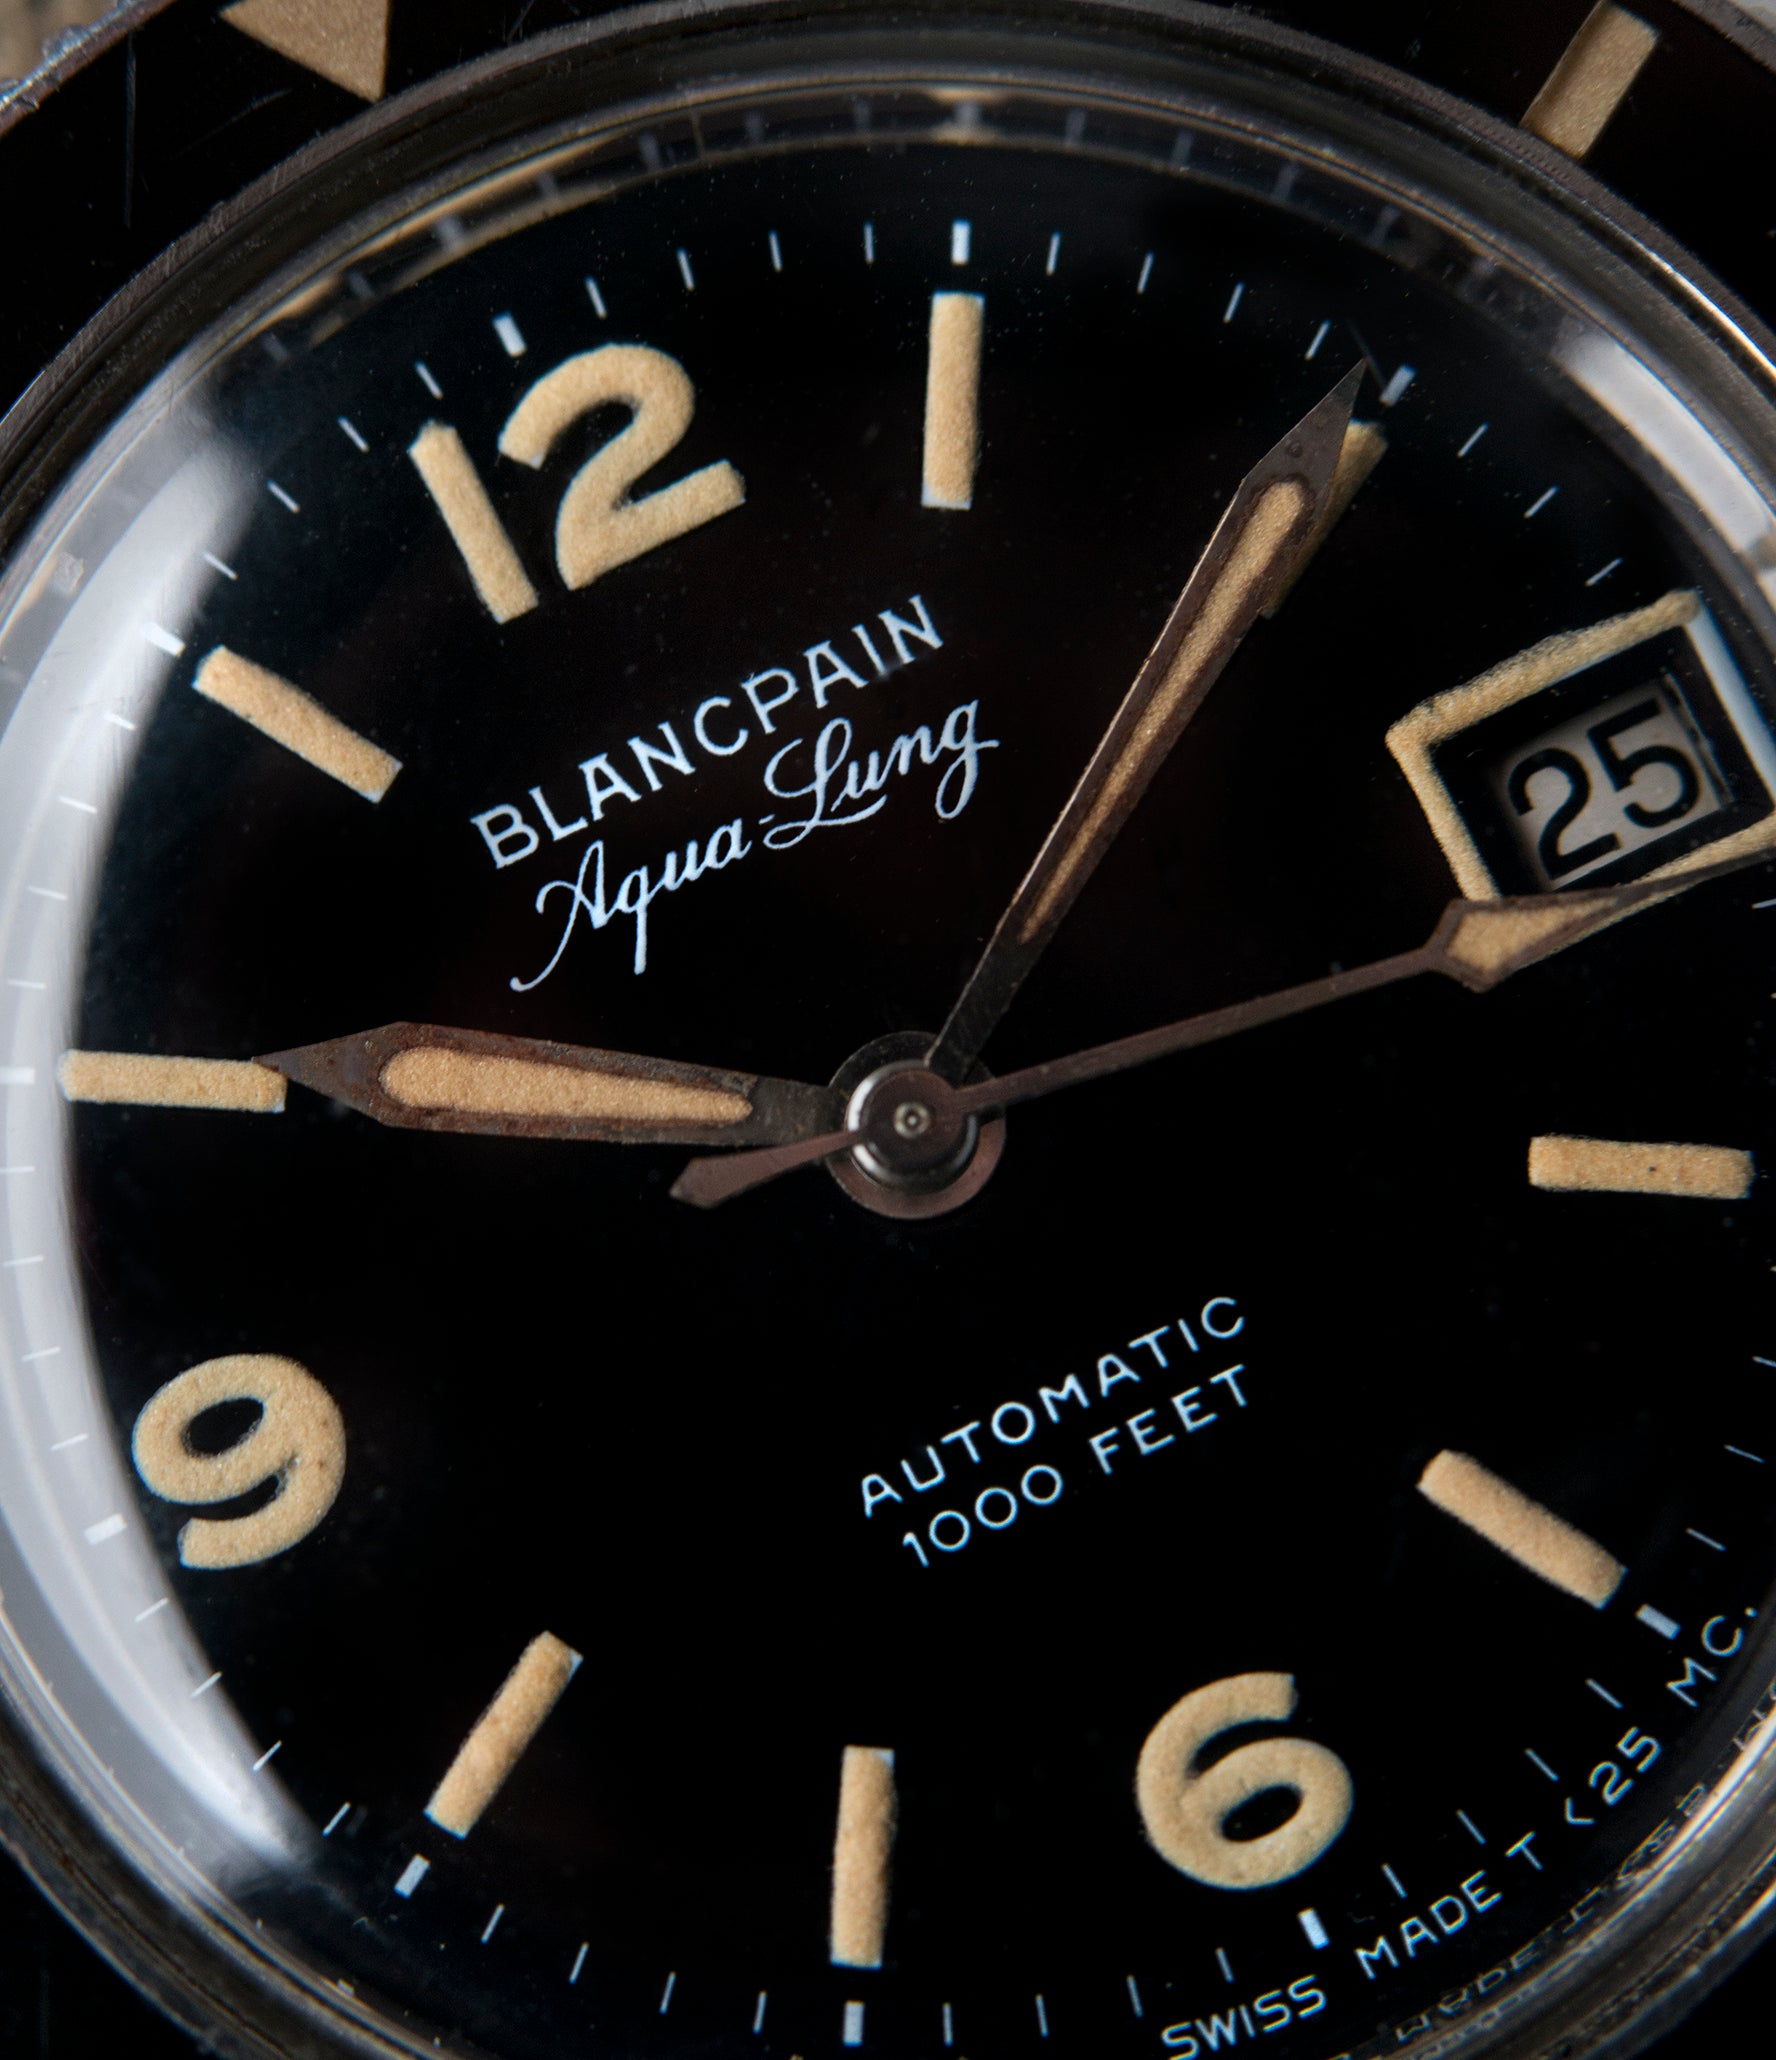 black unrestored dial Blancpain Aqua Lung Gloss Dial Cal. AS 1700/01 vintage sport watch black dial for sale online at A Collected Man London UK specialist rare, vintage watches